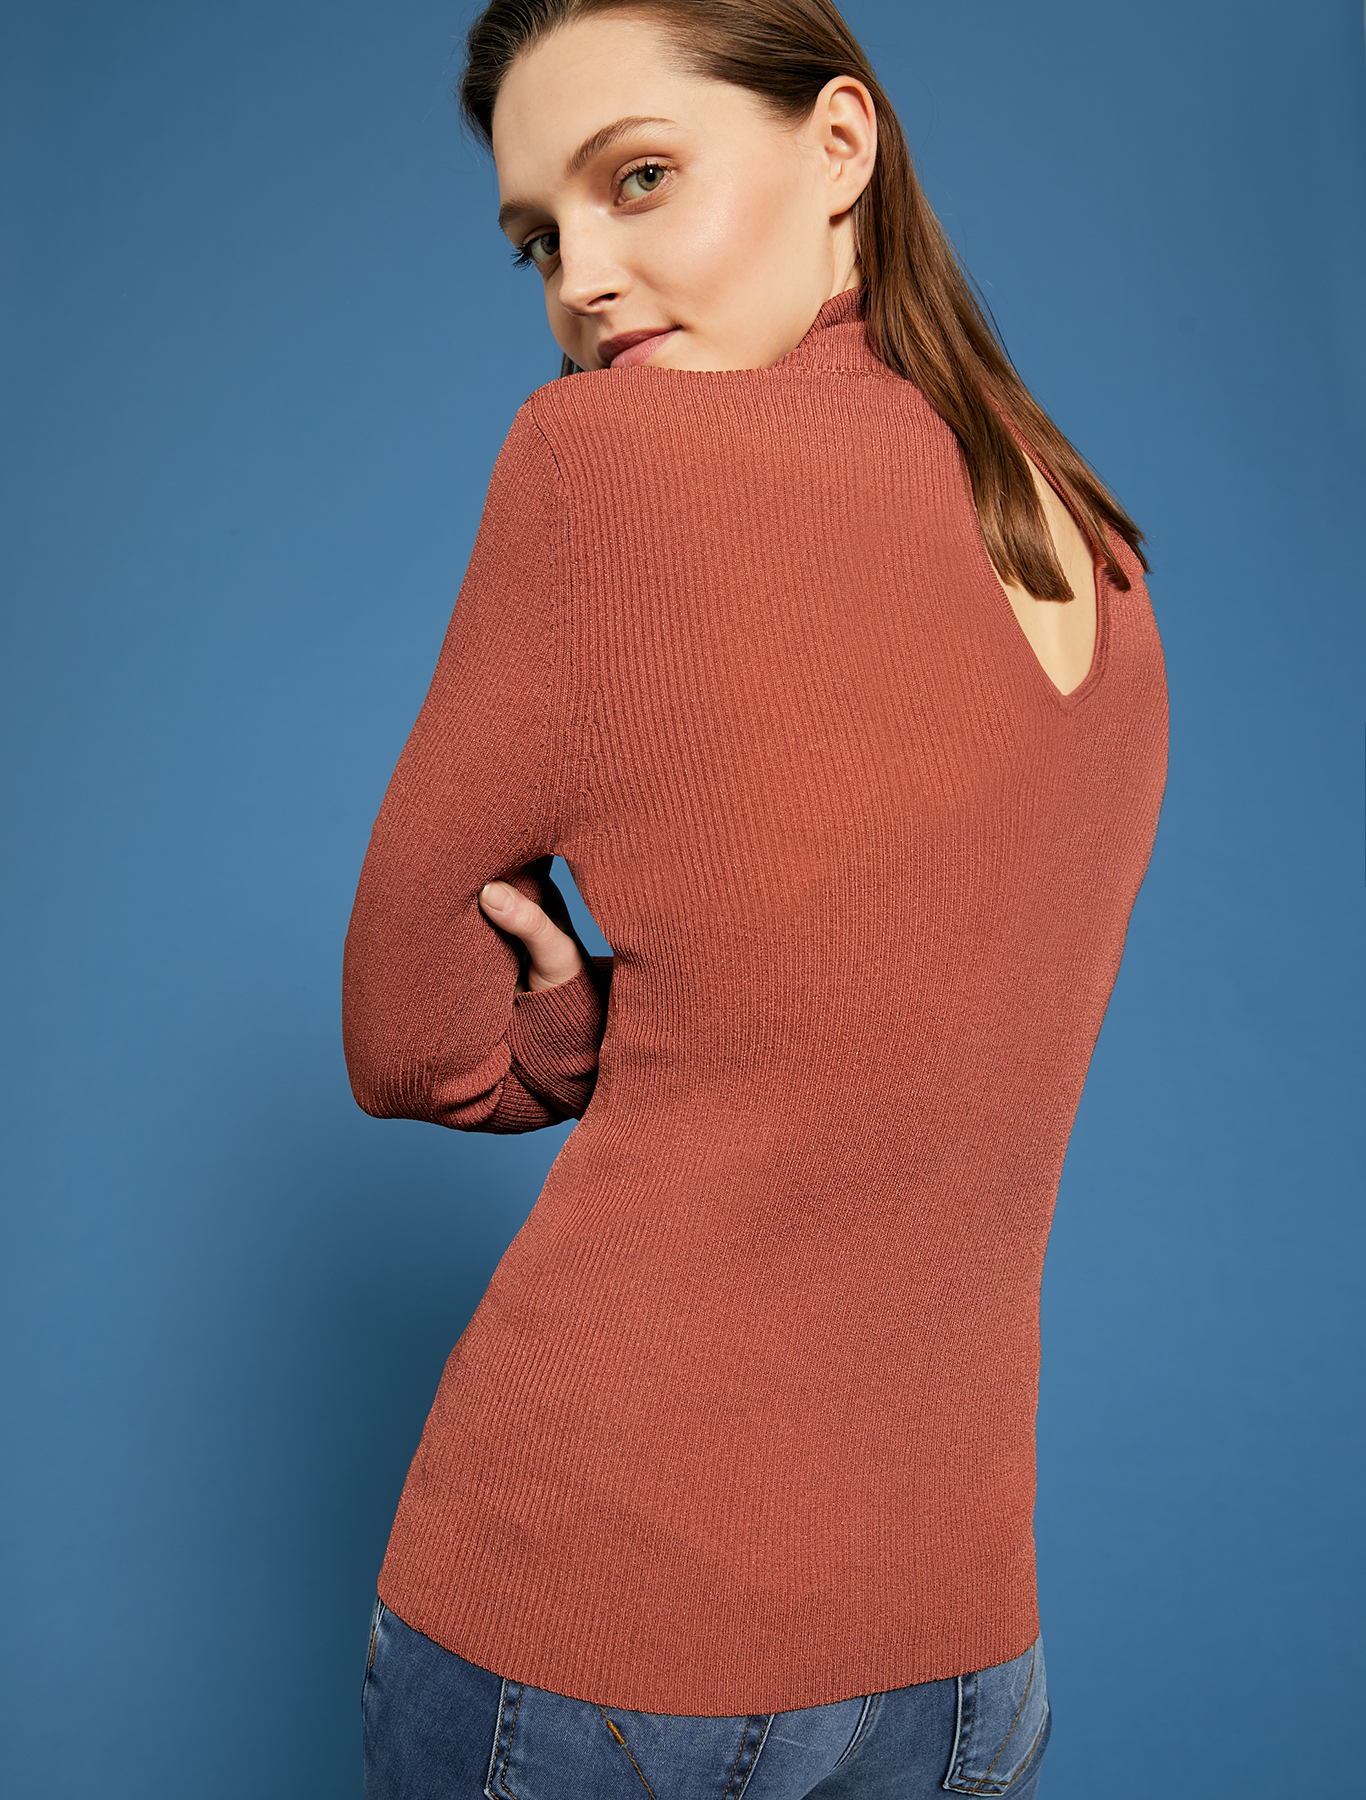 Ribbed knit turtleneck - brown - pennyblack